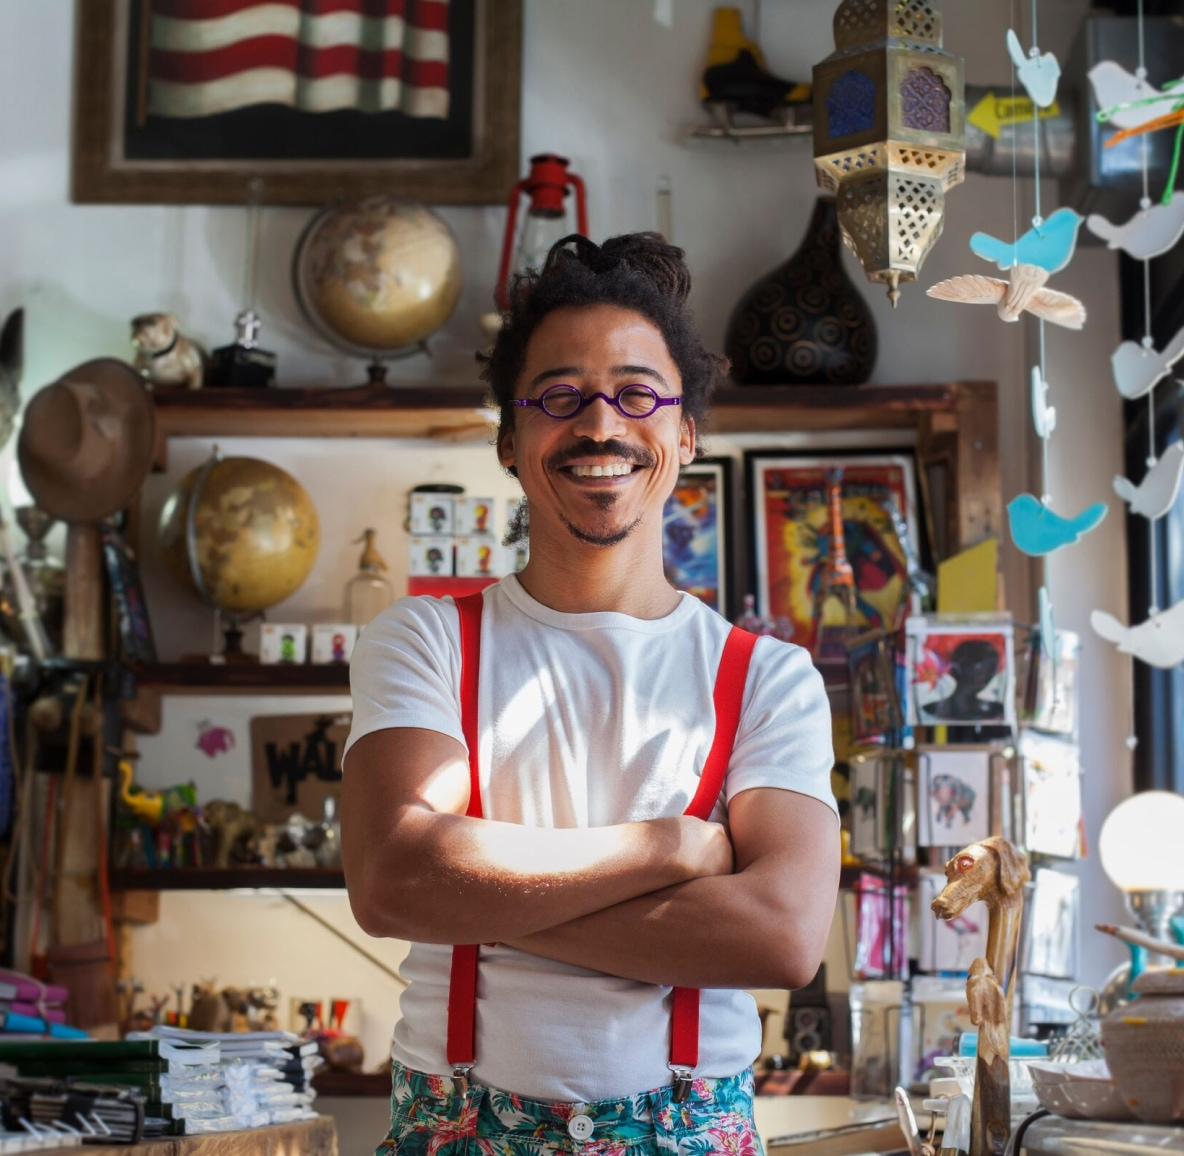 A smiling Black man with locs and red suspenders stands in a curio shop, arms crossed